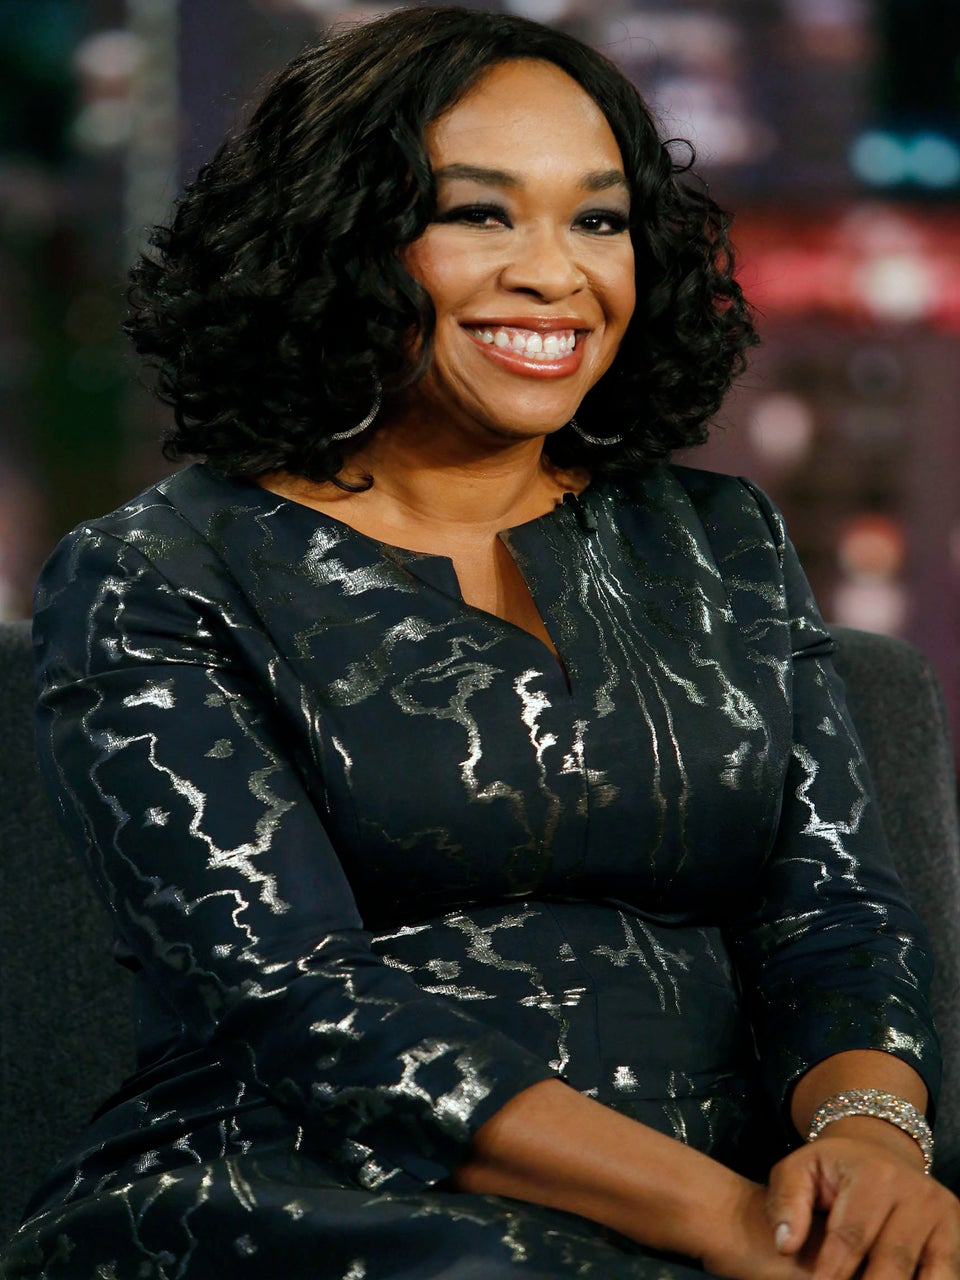 Shonda Rhimes on Her Impressive Weight Loss: It's Never Been About a 'Number'